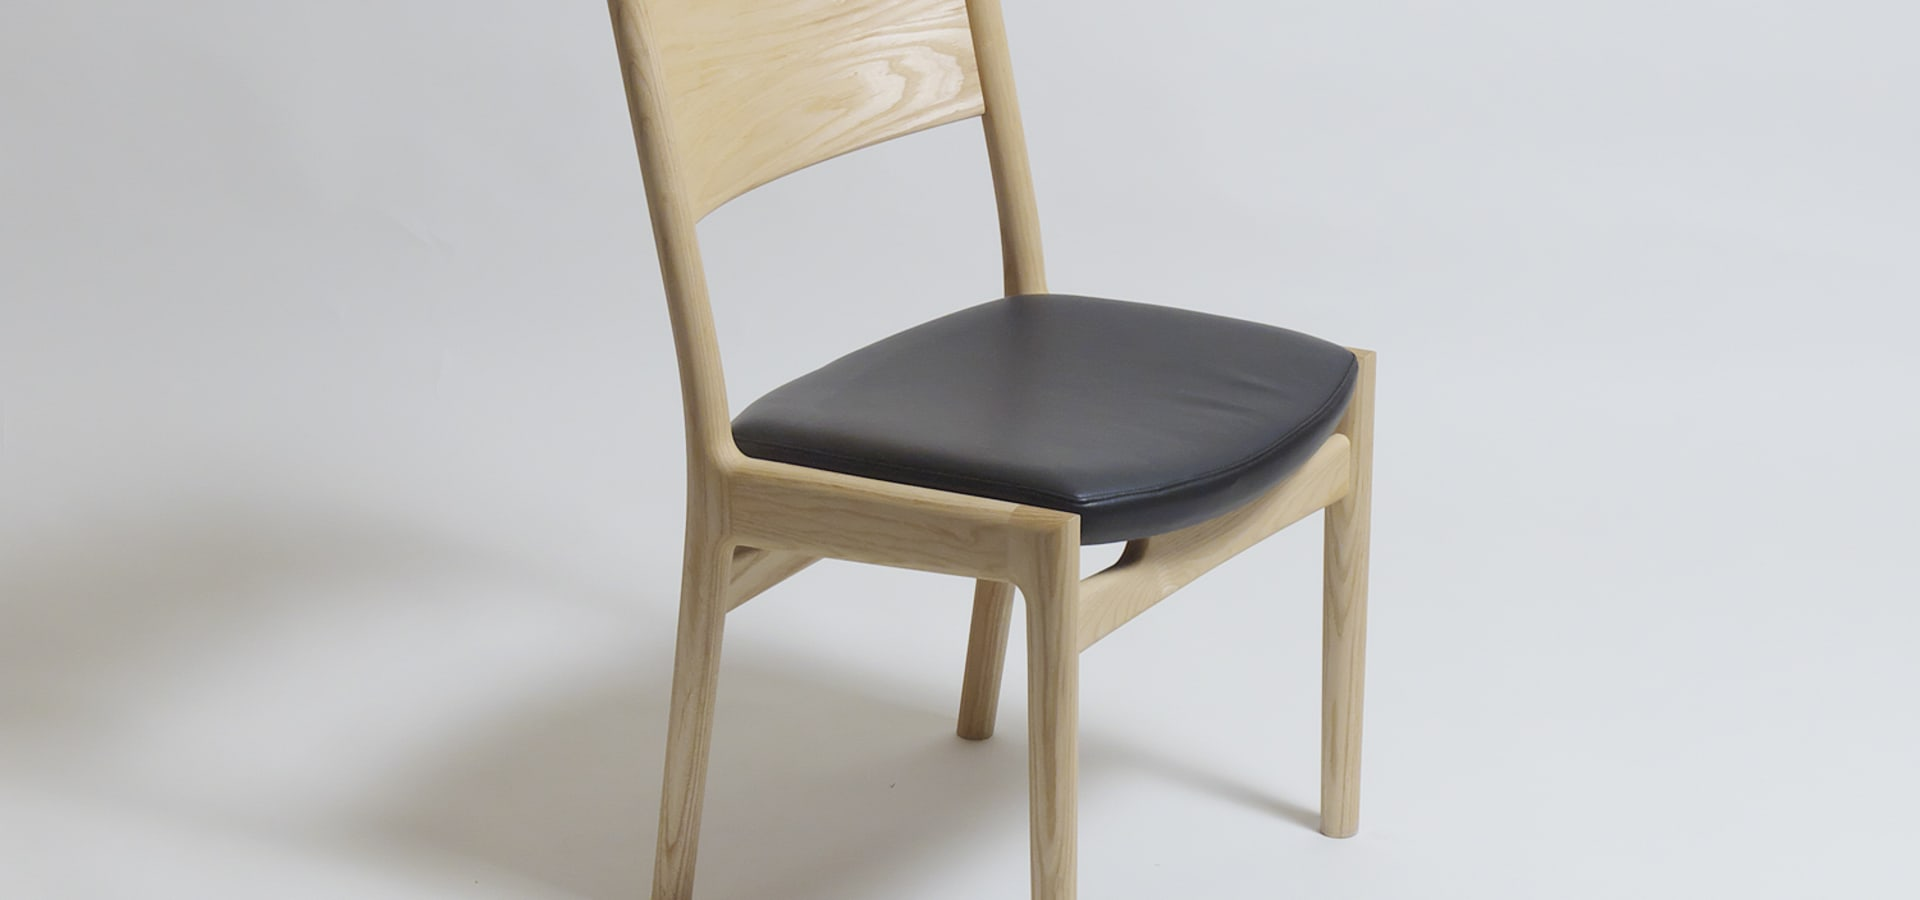 DISCREETCHAIR